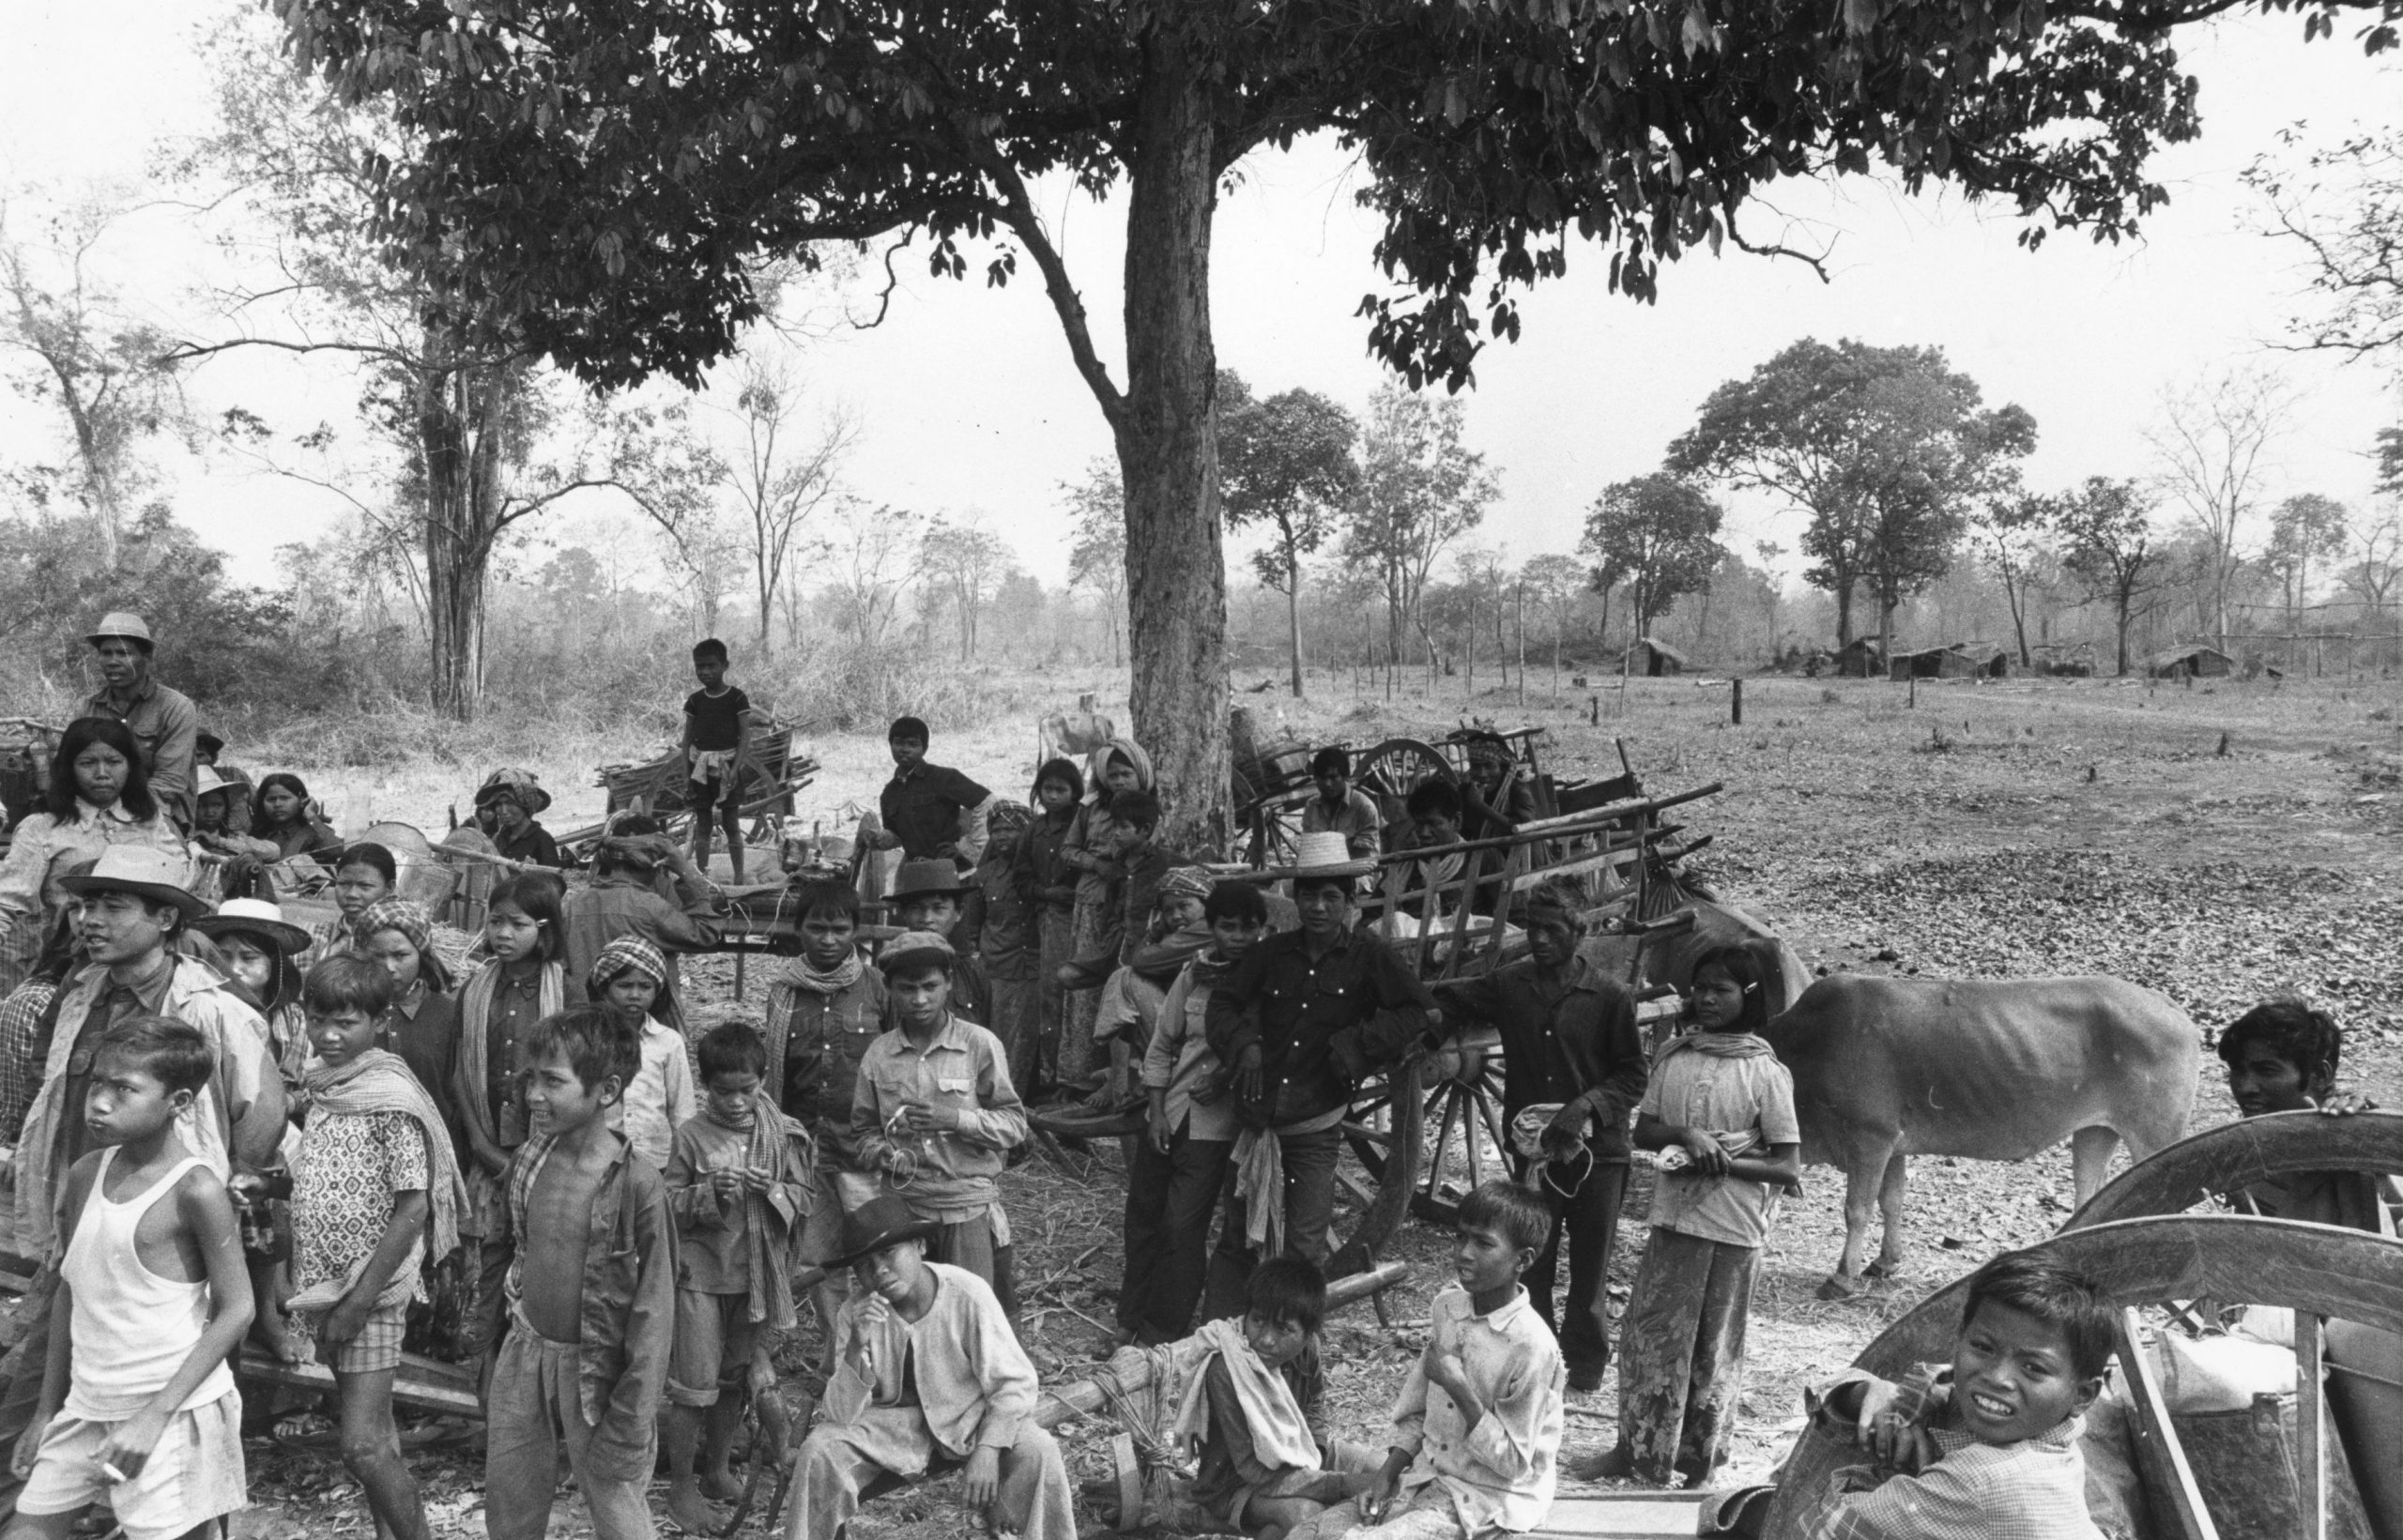 Refugees on their way to the Thai border to collect food for their villages in Cambodia, during unrest in Cambodia, c. 1980